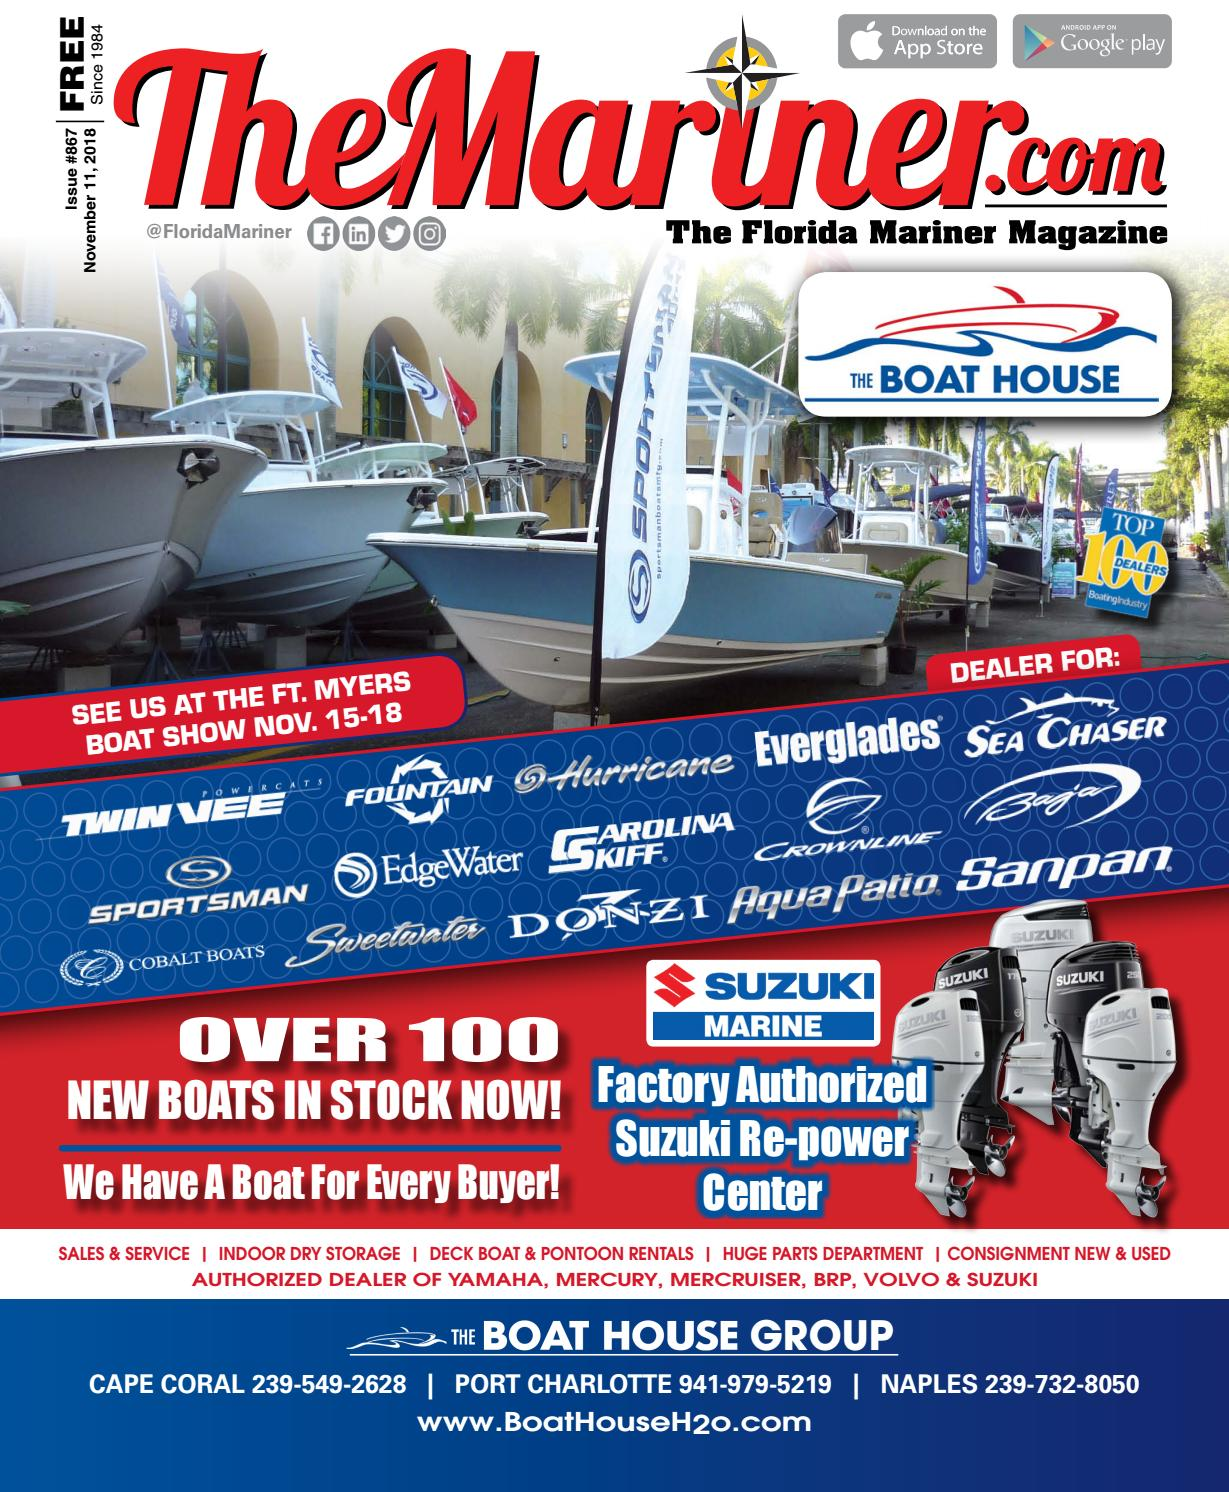 d0310c39e1e4 Issue 867 by The Florida Mariner - issuu